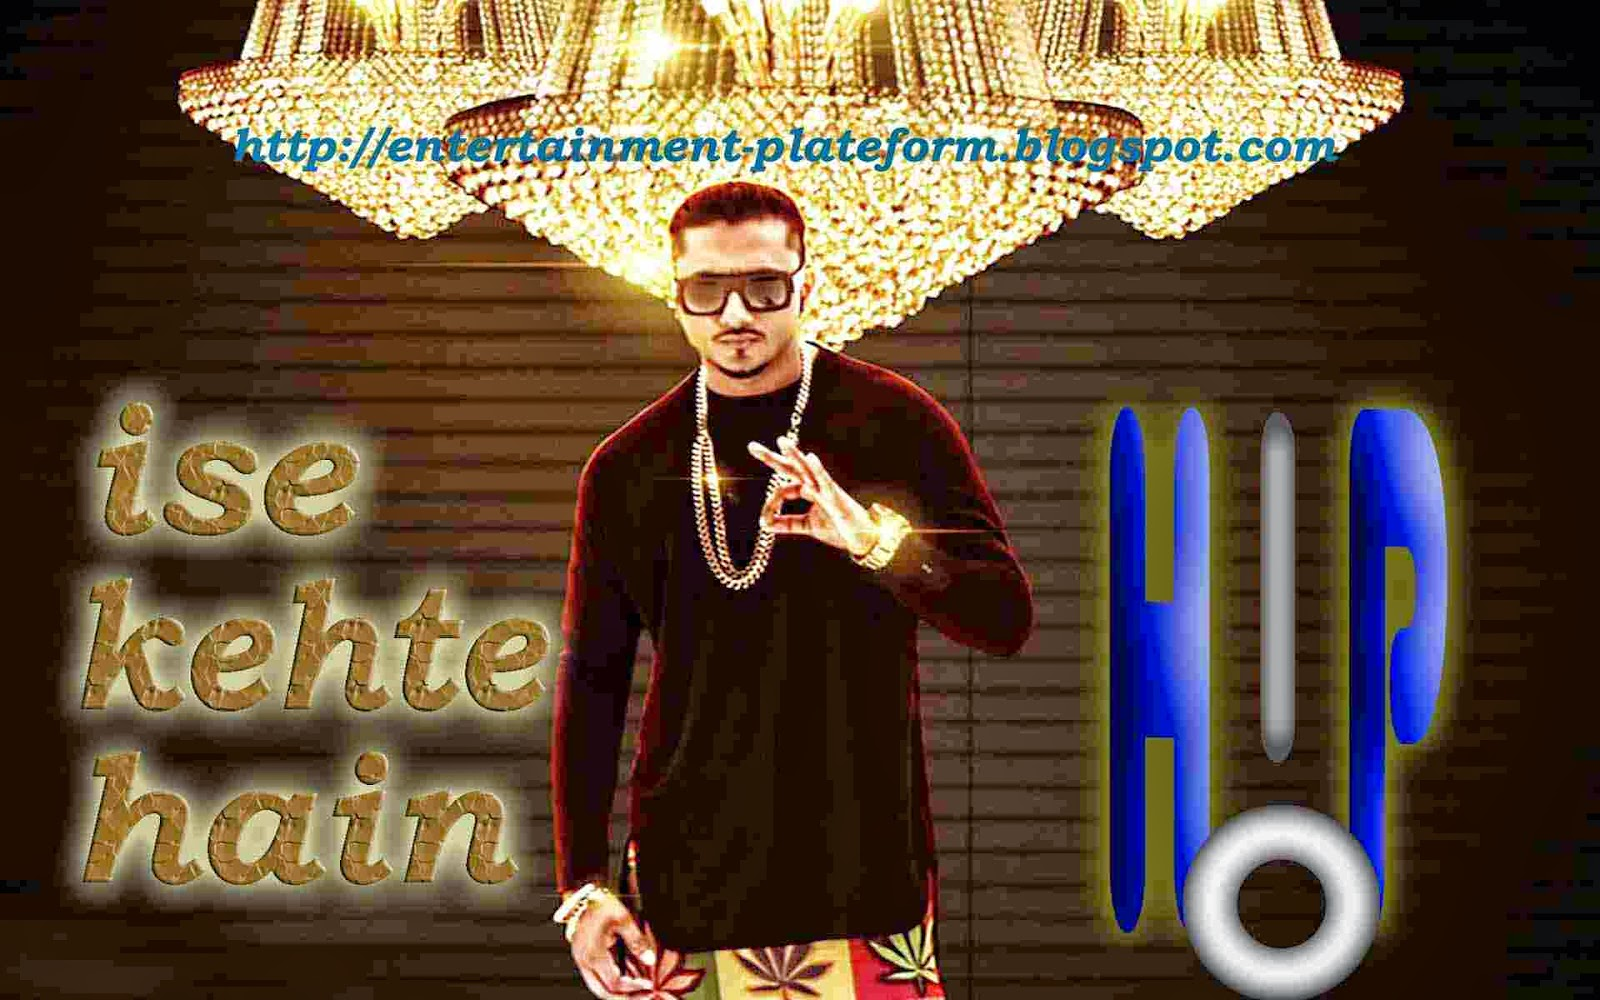 Ise-Kehte-Hain-Hip-Hop-by-Honey-Singh